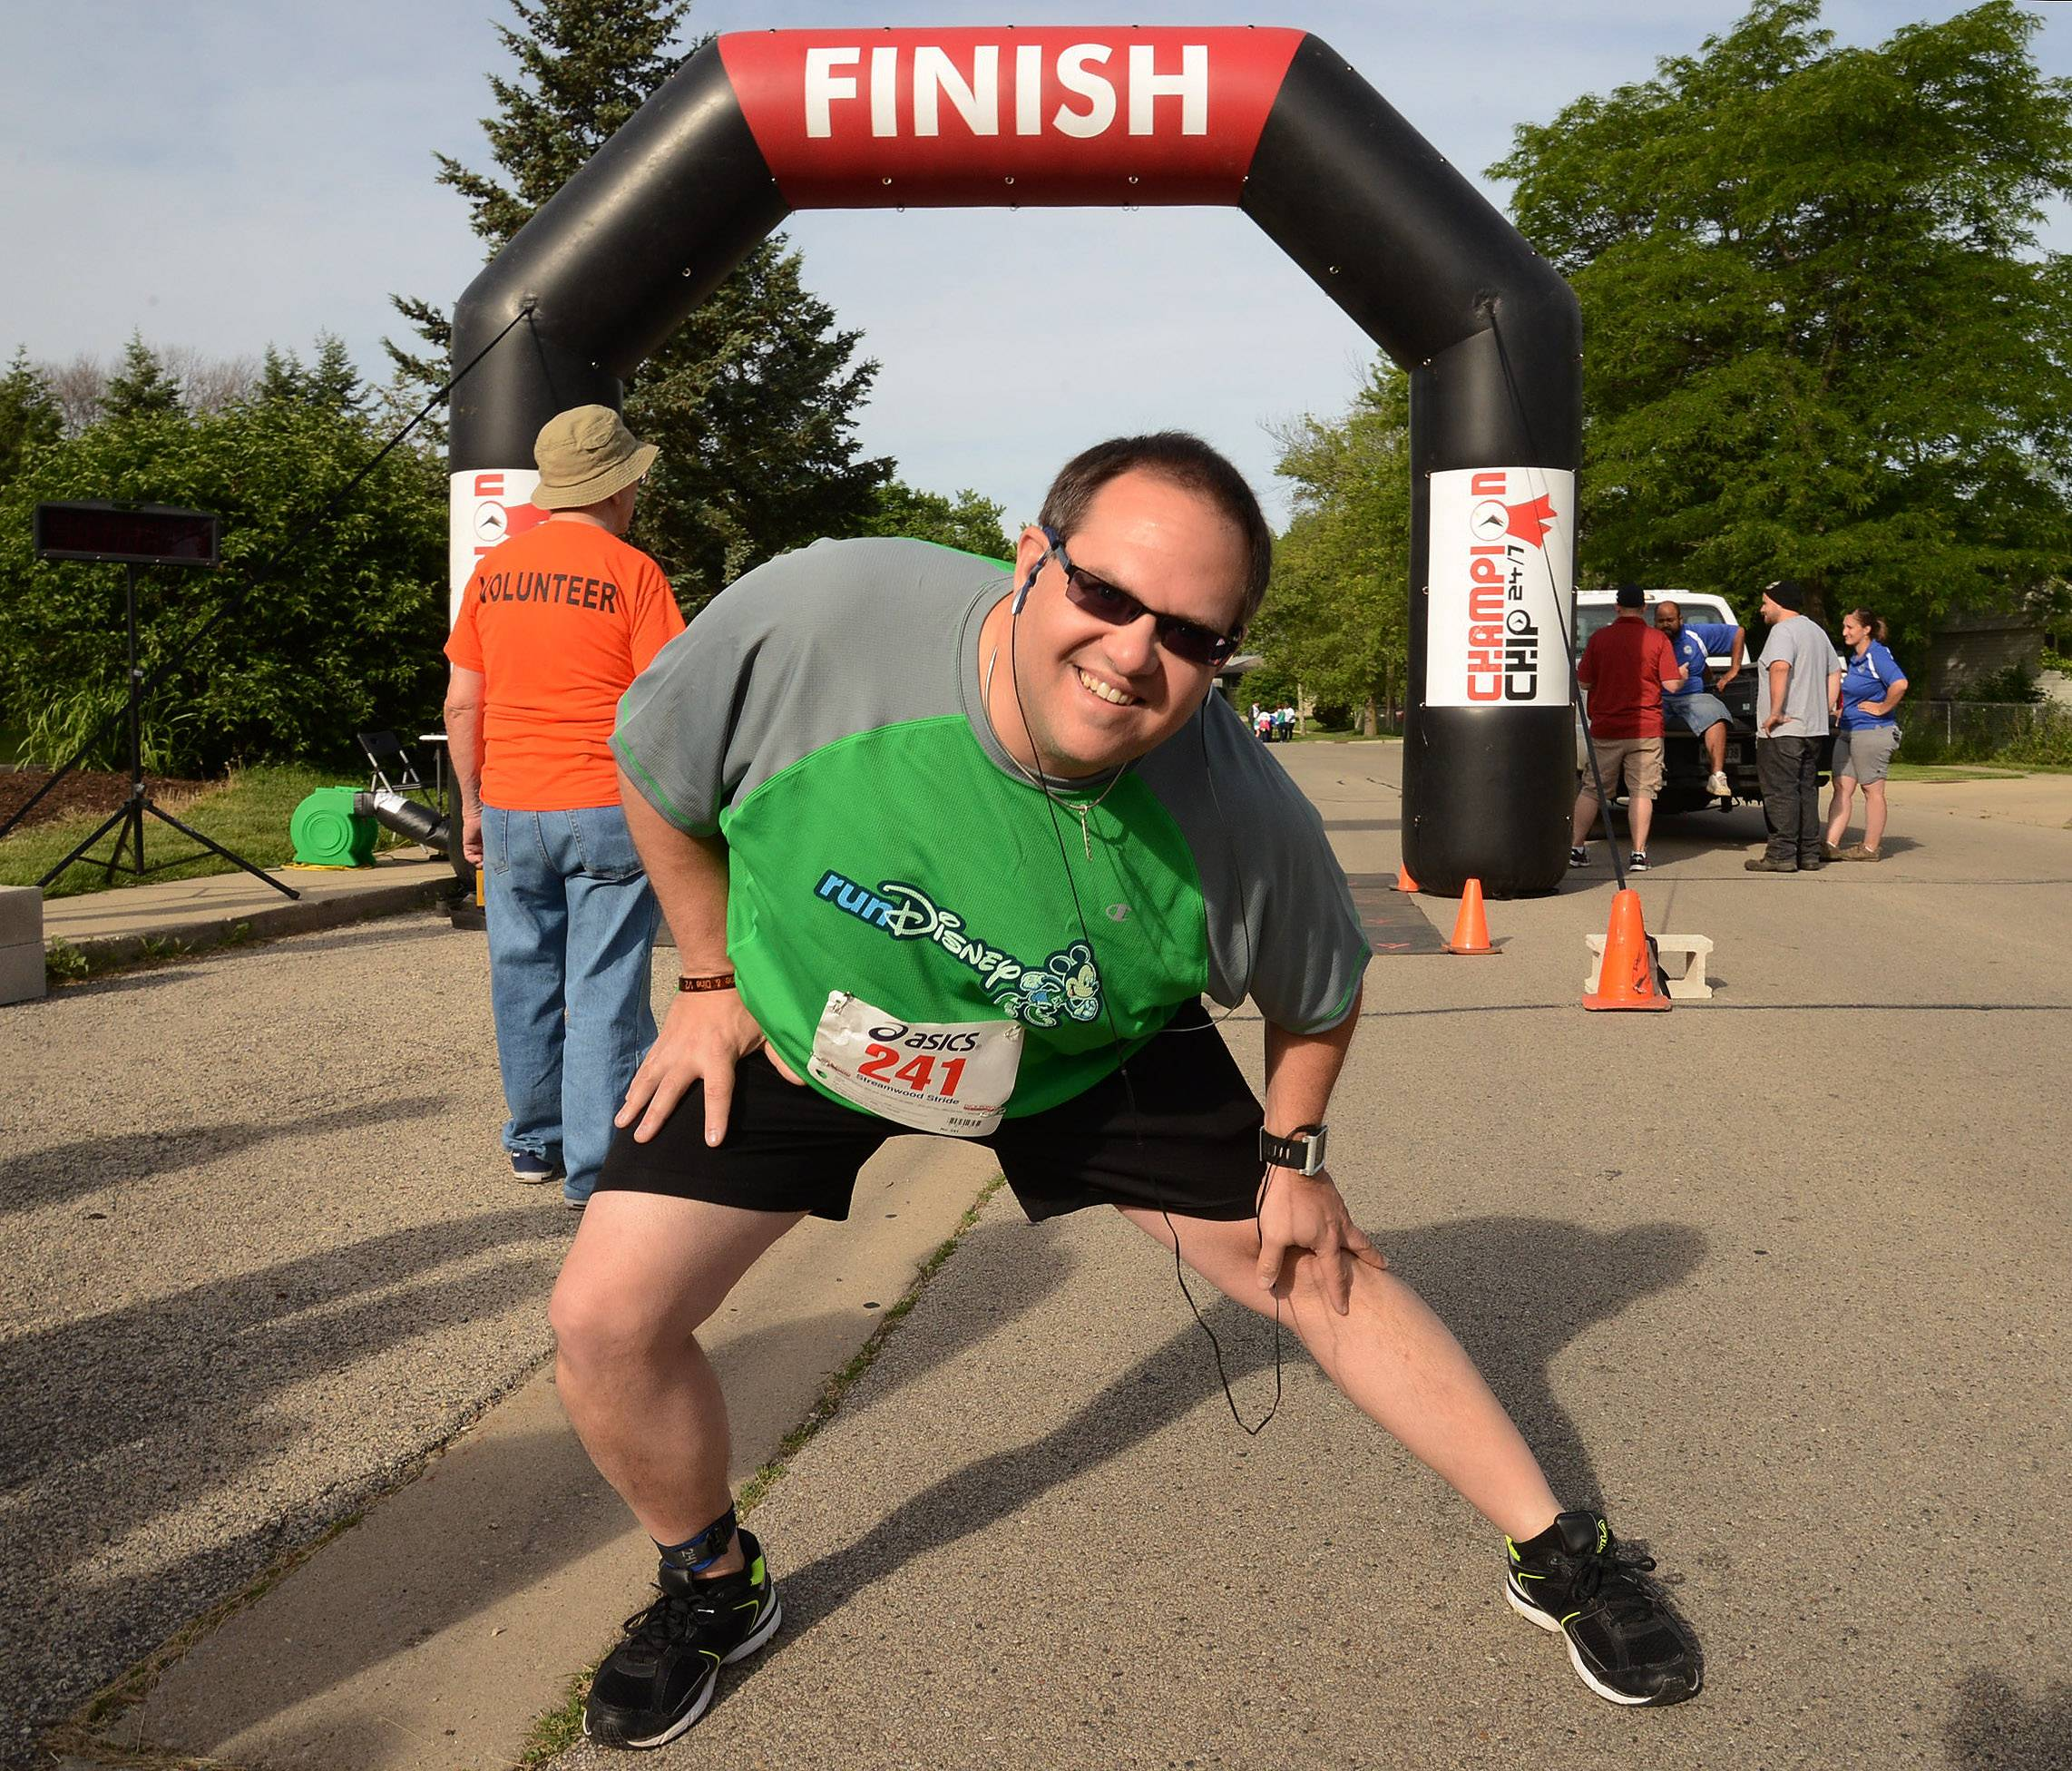 Paul Kobos of Streamwood stretches before the start of the Streamwood Stride 5K/10K/Fun Run Saturday morning at the Park Place Family Recreation Center. Kobos lives down the street and considers this his home race.